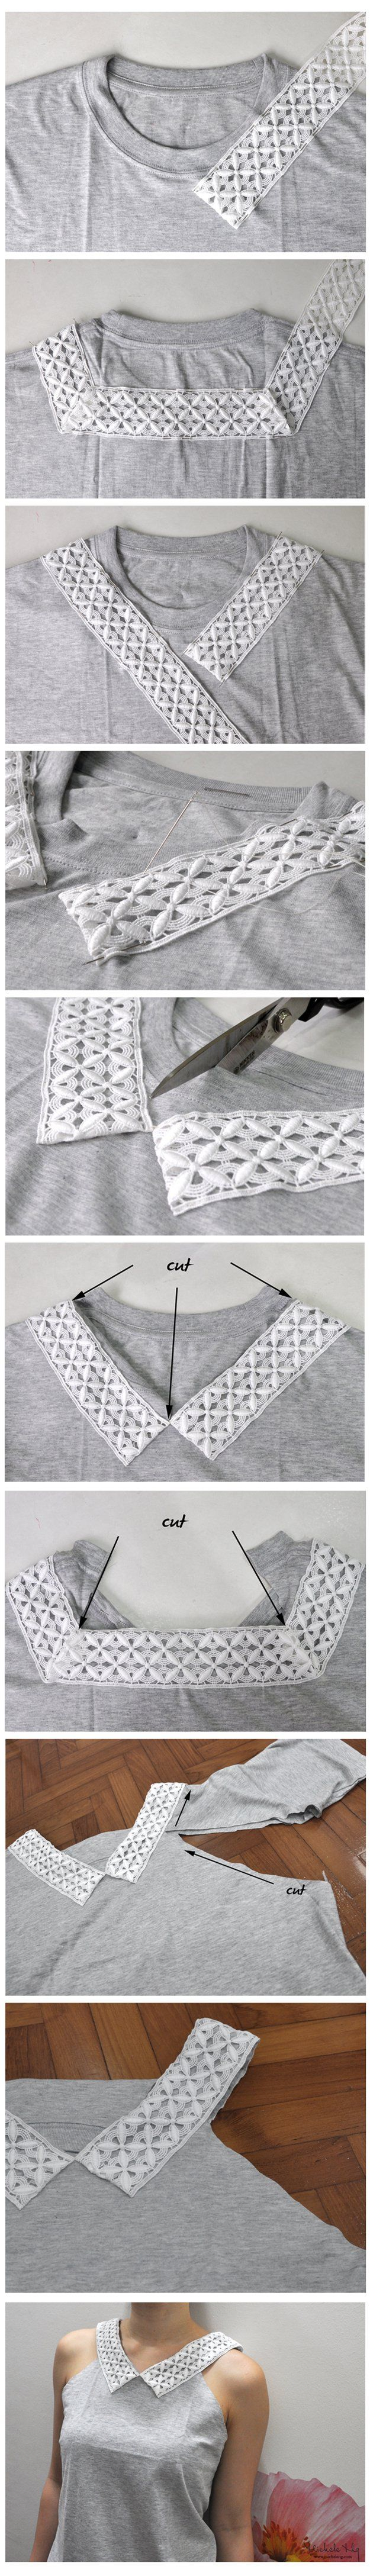 Fácil Top DIY Tutorial del T-shirt | artesaniasdebricolaje.ru/diy-clothes-sewing-blouses-tutorial/